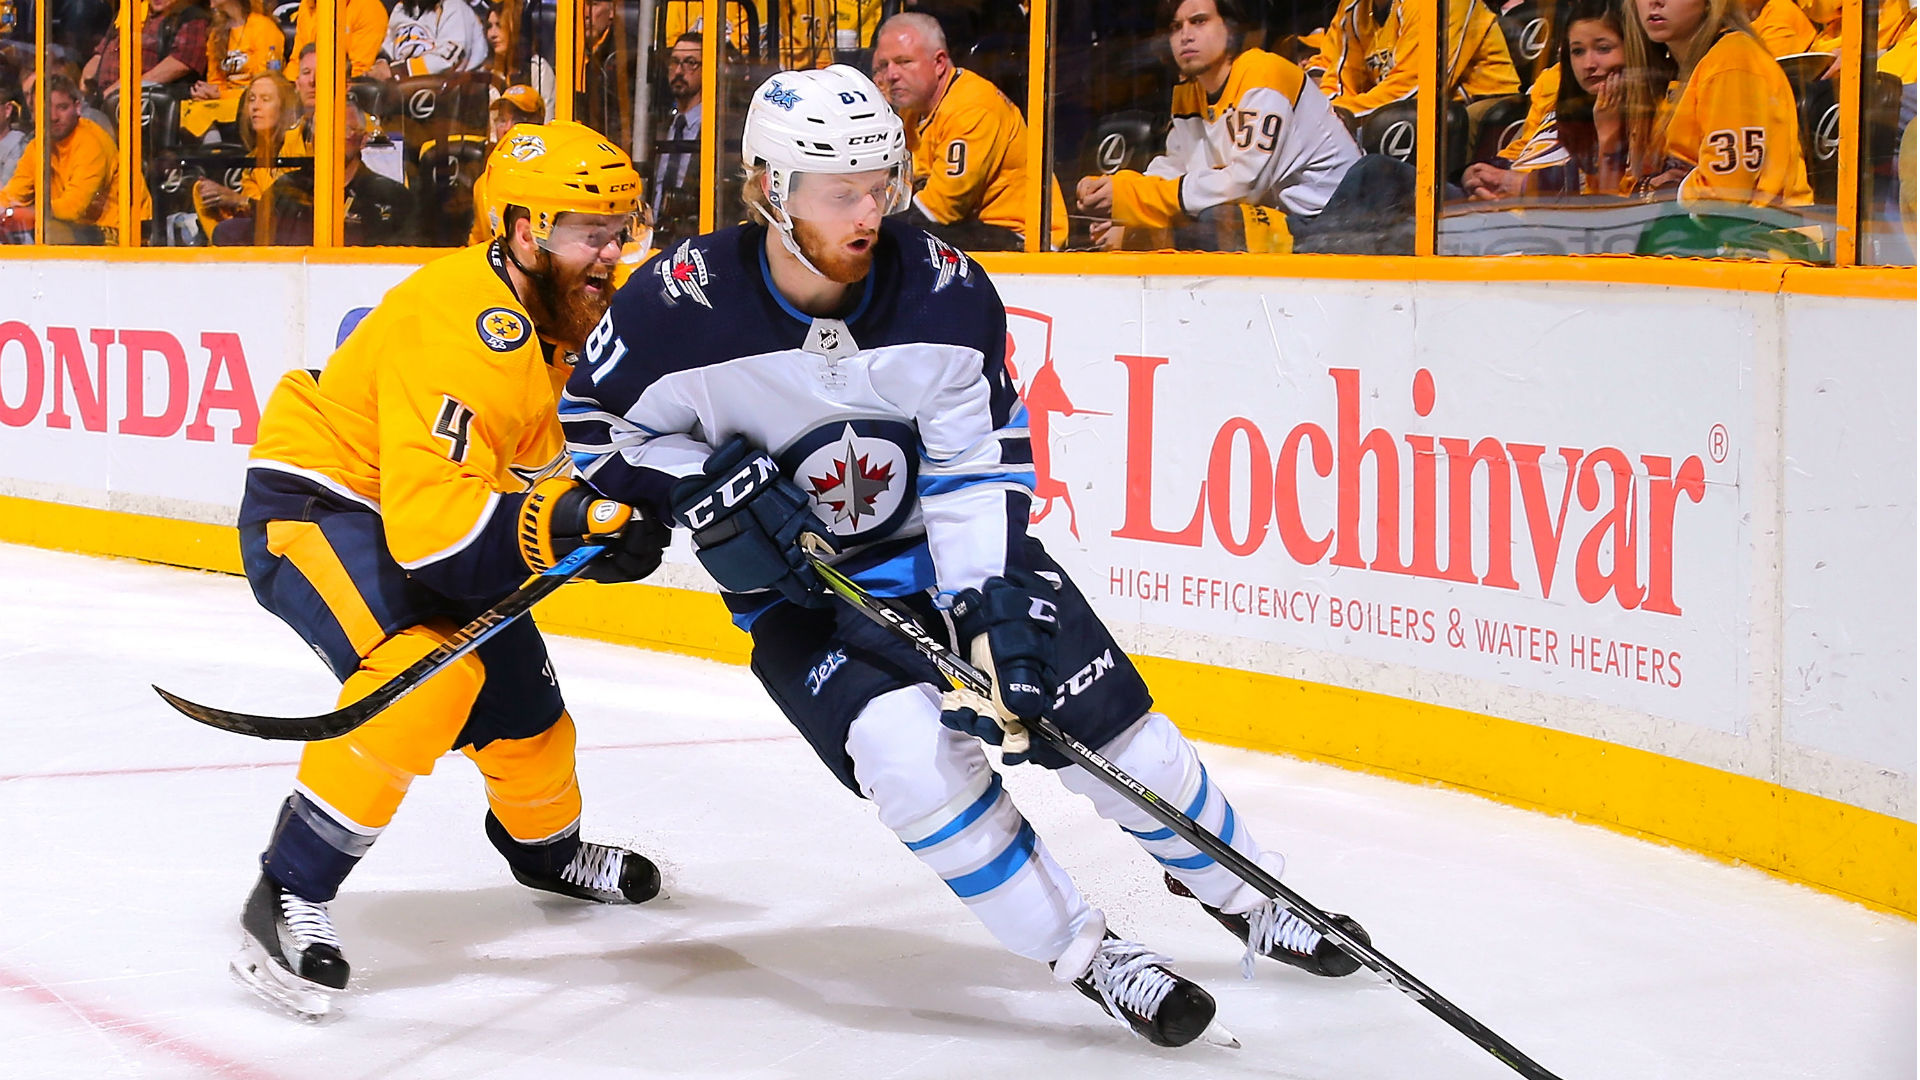 Nashville Predators vs. Winnipeg Jets 5/1/18, Prediction & Odds